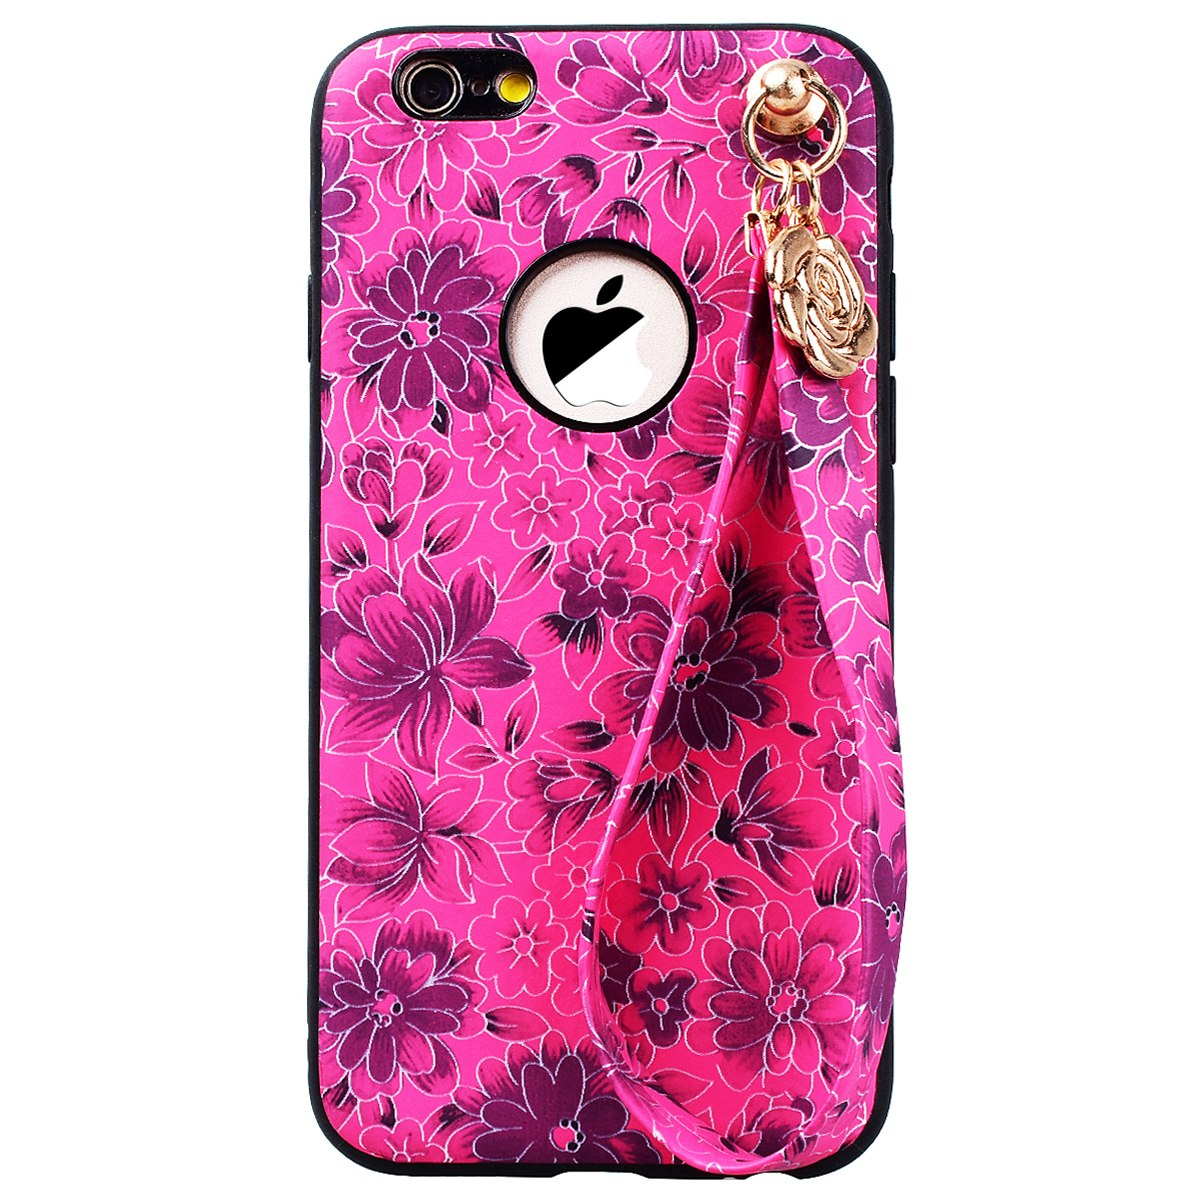 Grandever Floral Hard Phone Case For Iphone 6 6s Plus Case Pc With